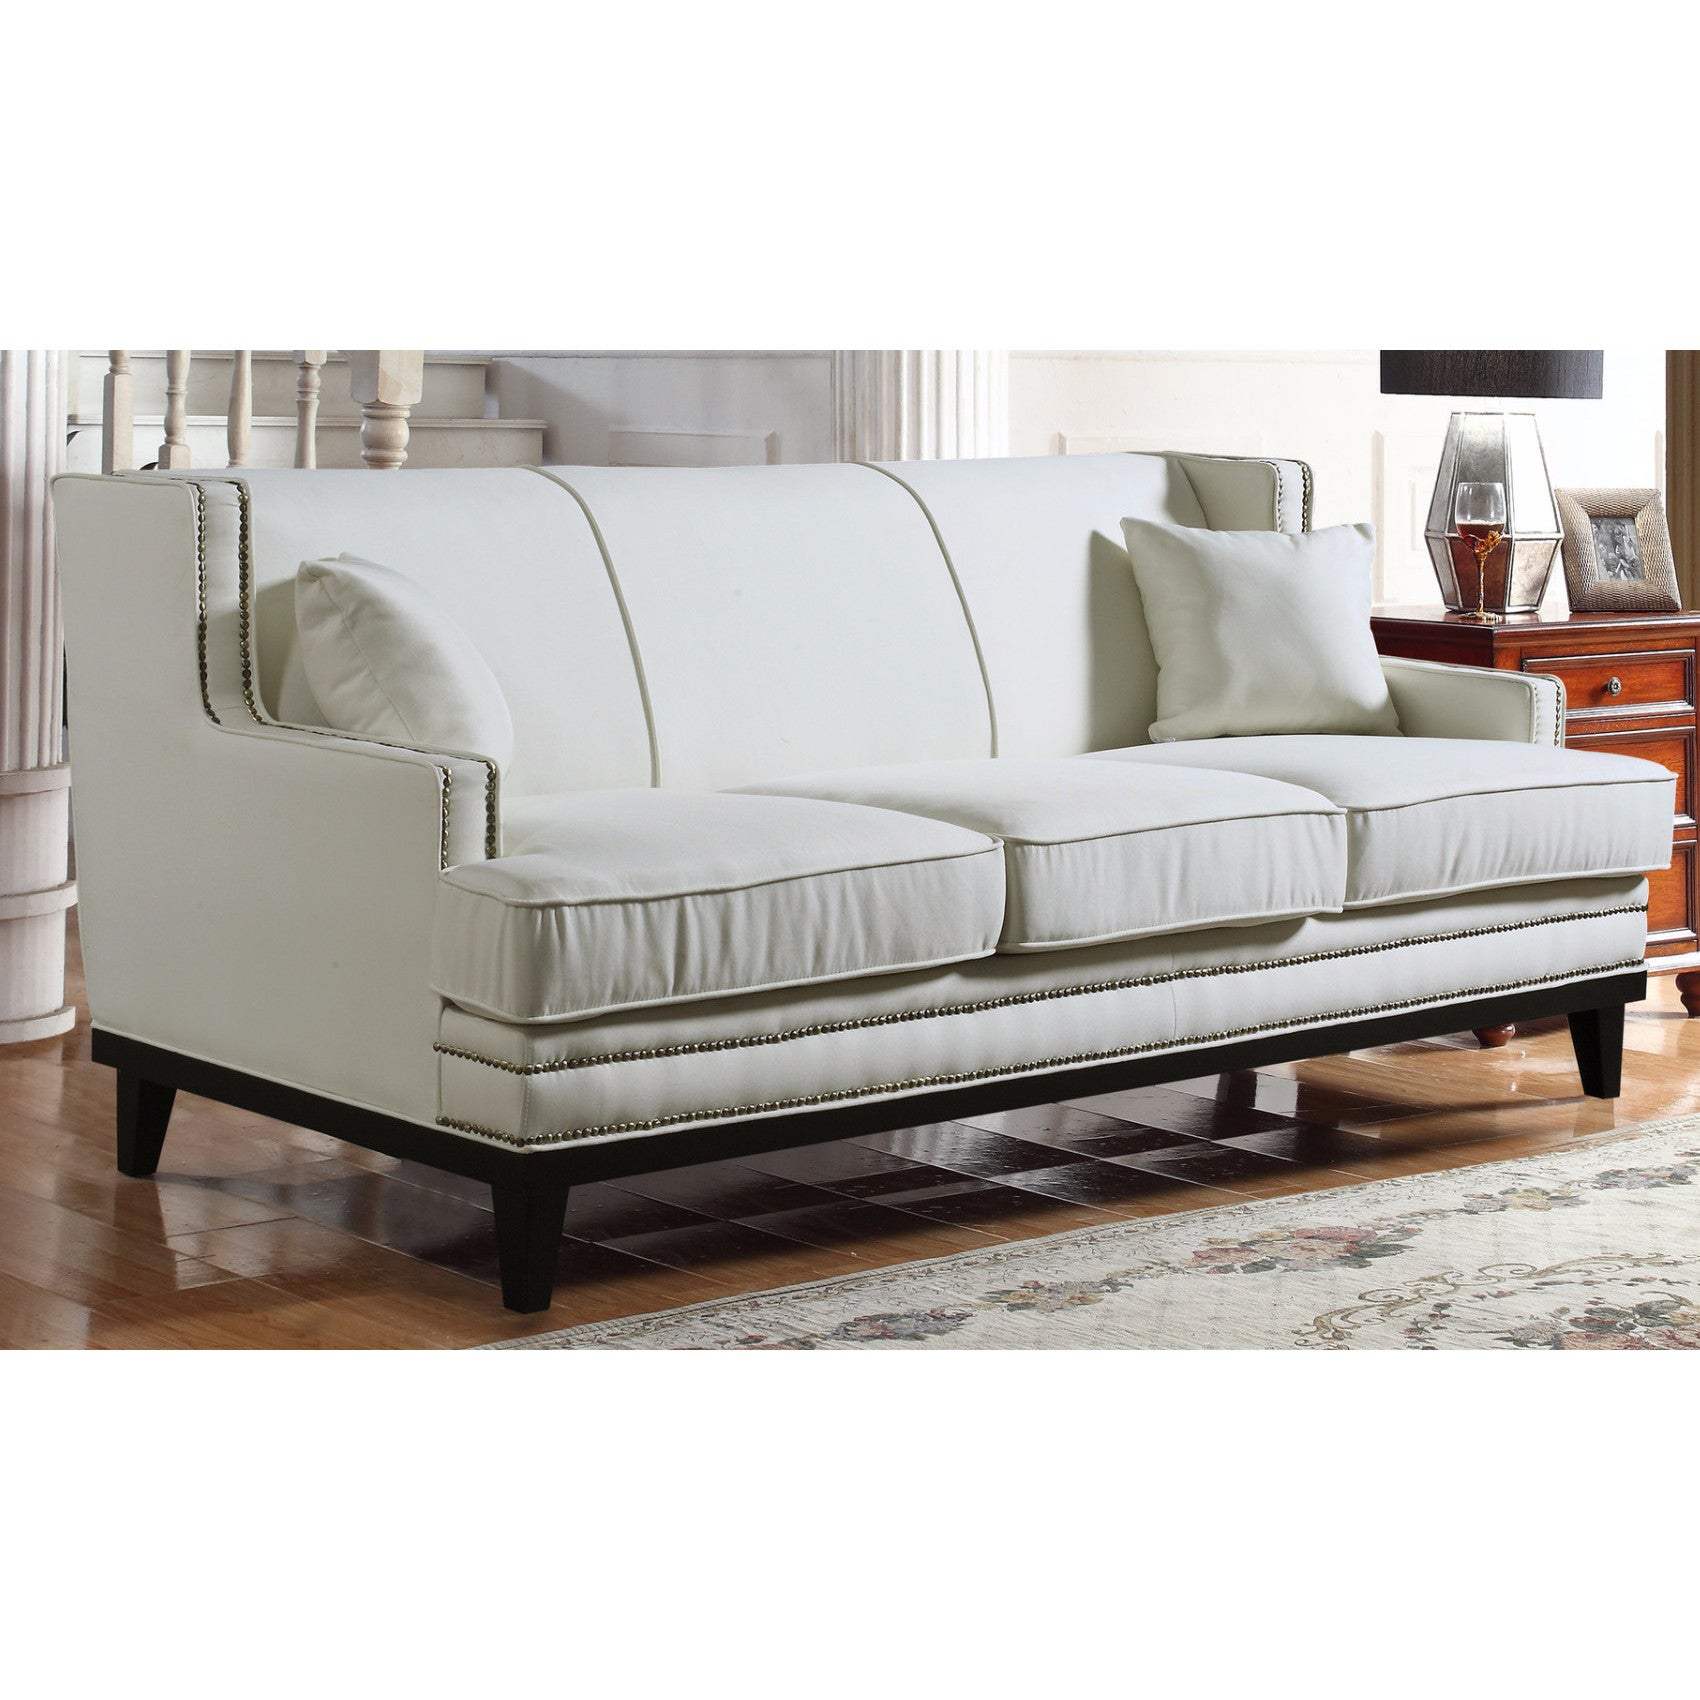 Shop Modern Soft Linen Fabric Sofa With Nailhead Trim Details   Free  Shipping Today   Overstock.com   13292322